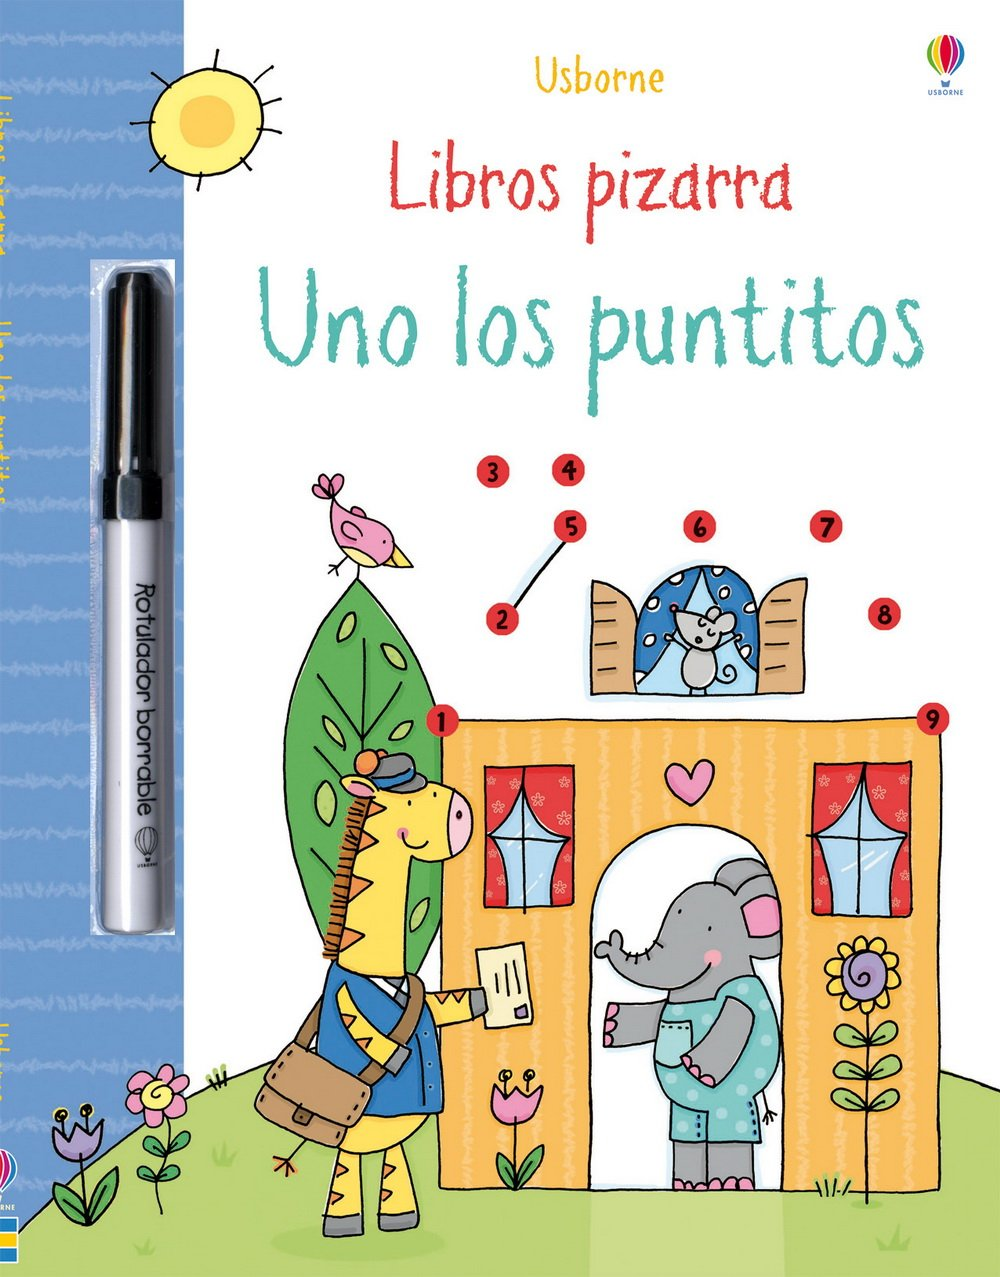 Uno los puntitos: Stacey Lamb: 9781409543787: Amazon.com: Books